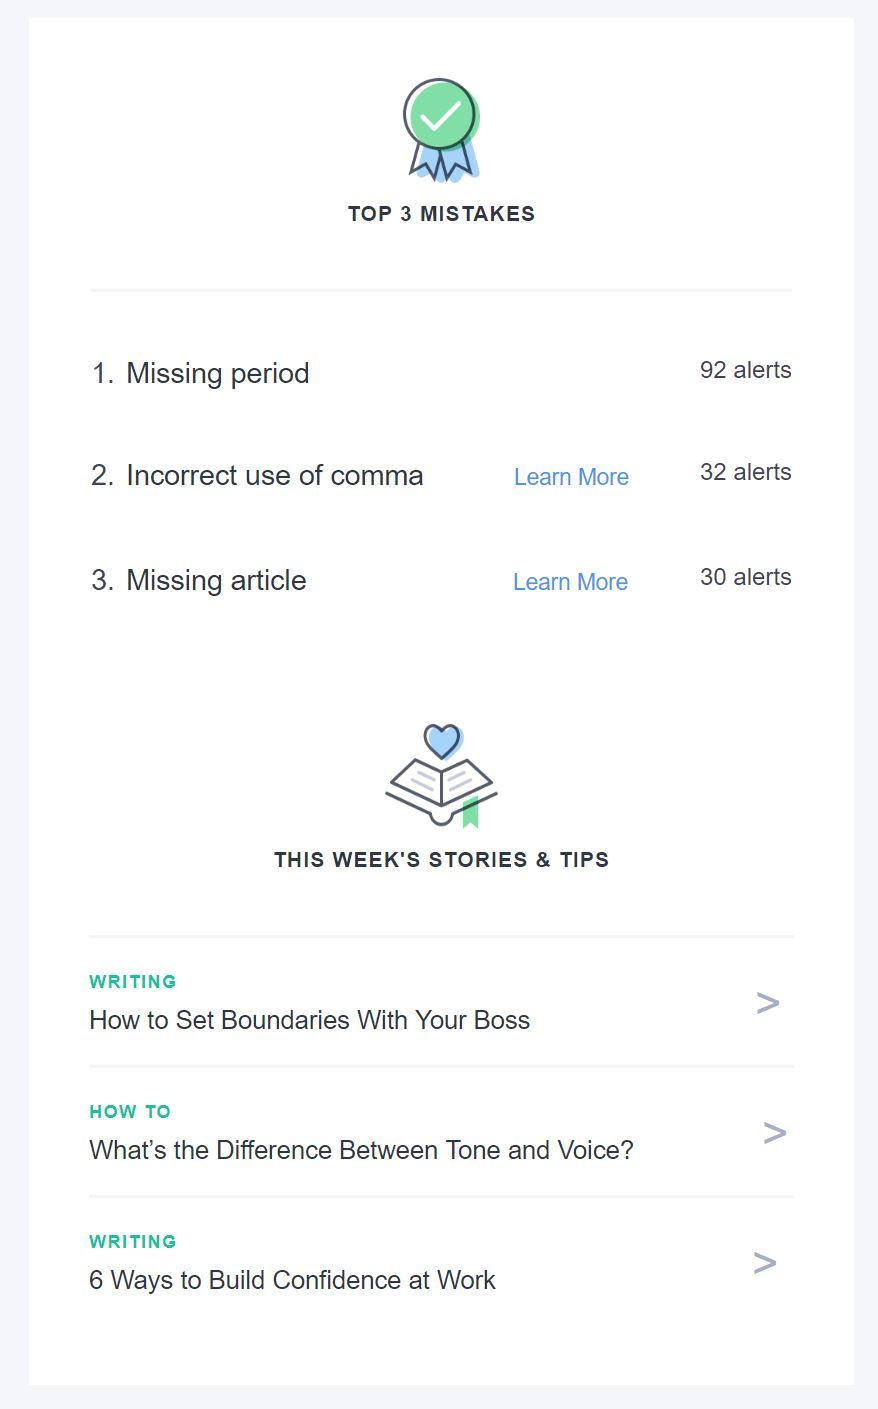 Grammarly's weekly Writing Insights email identifies your top three mistakes from the previous week and links to articles on how to improve your writing game.